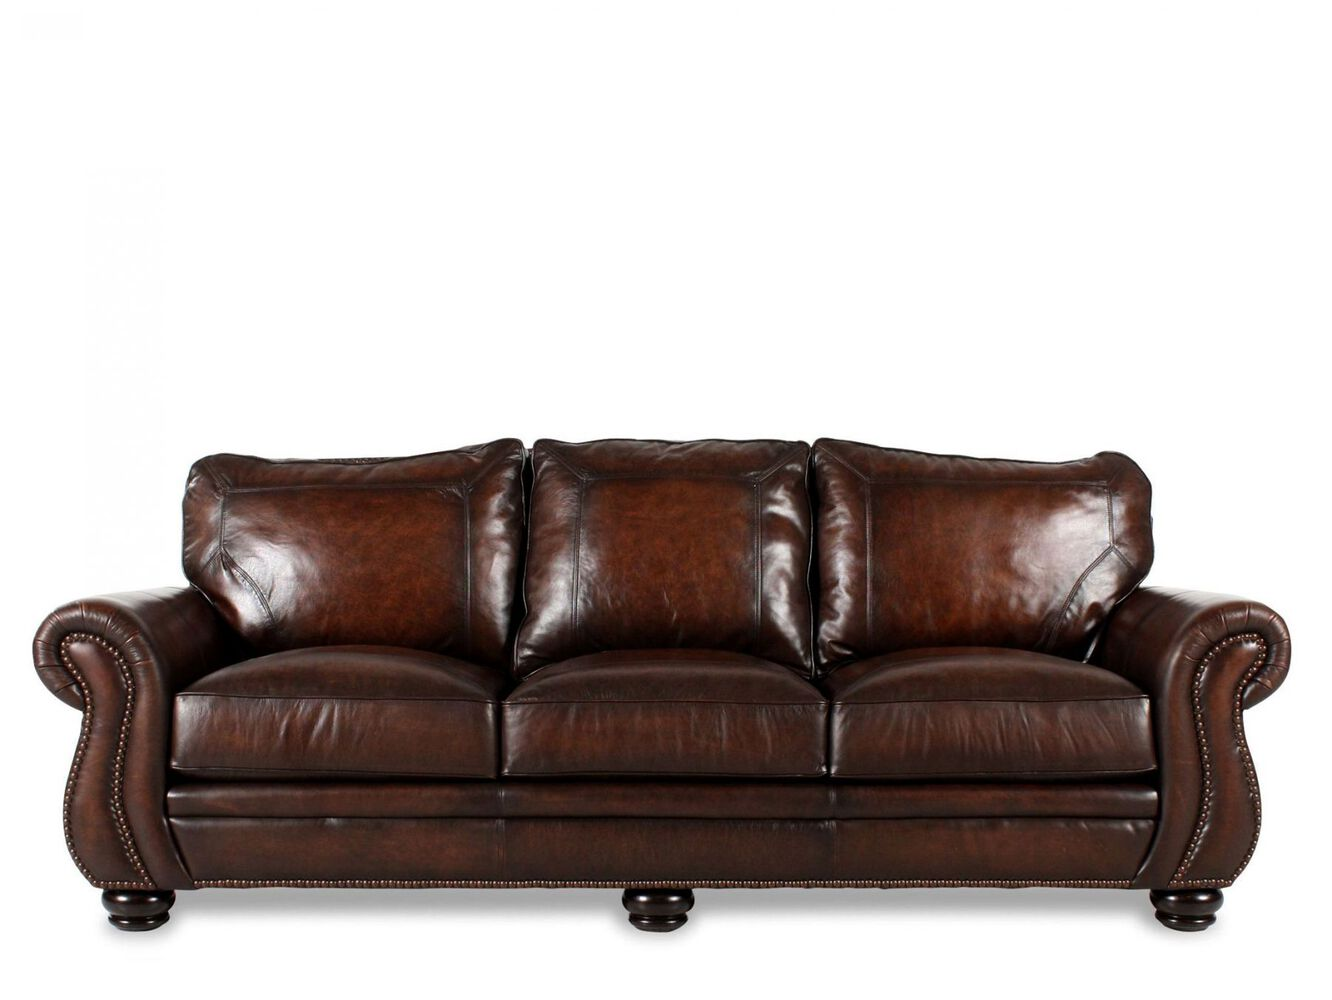 Bernhardt leather sofa mathis brothers for Bernhardt furniture